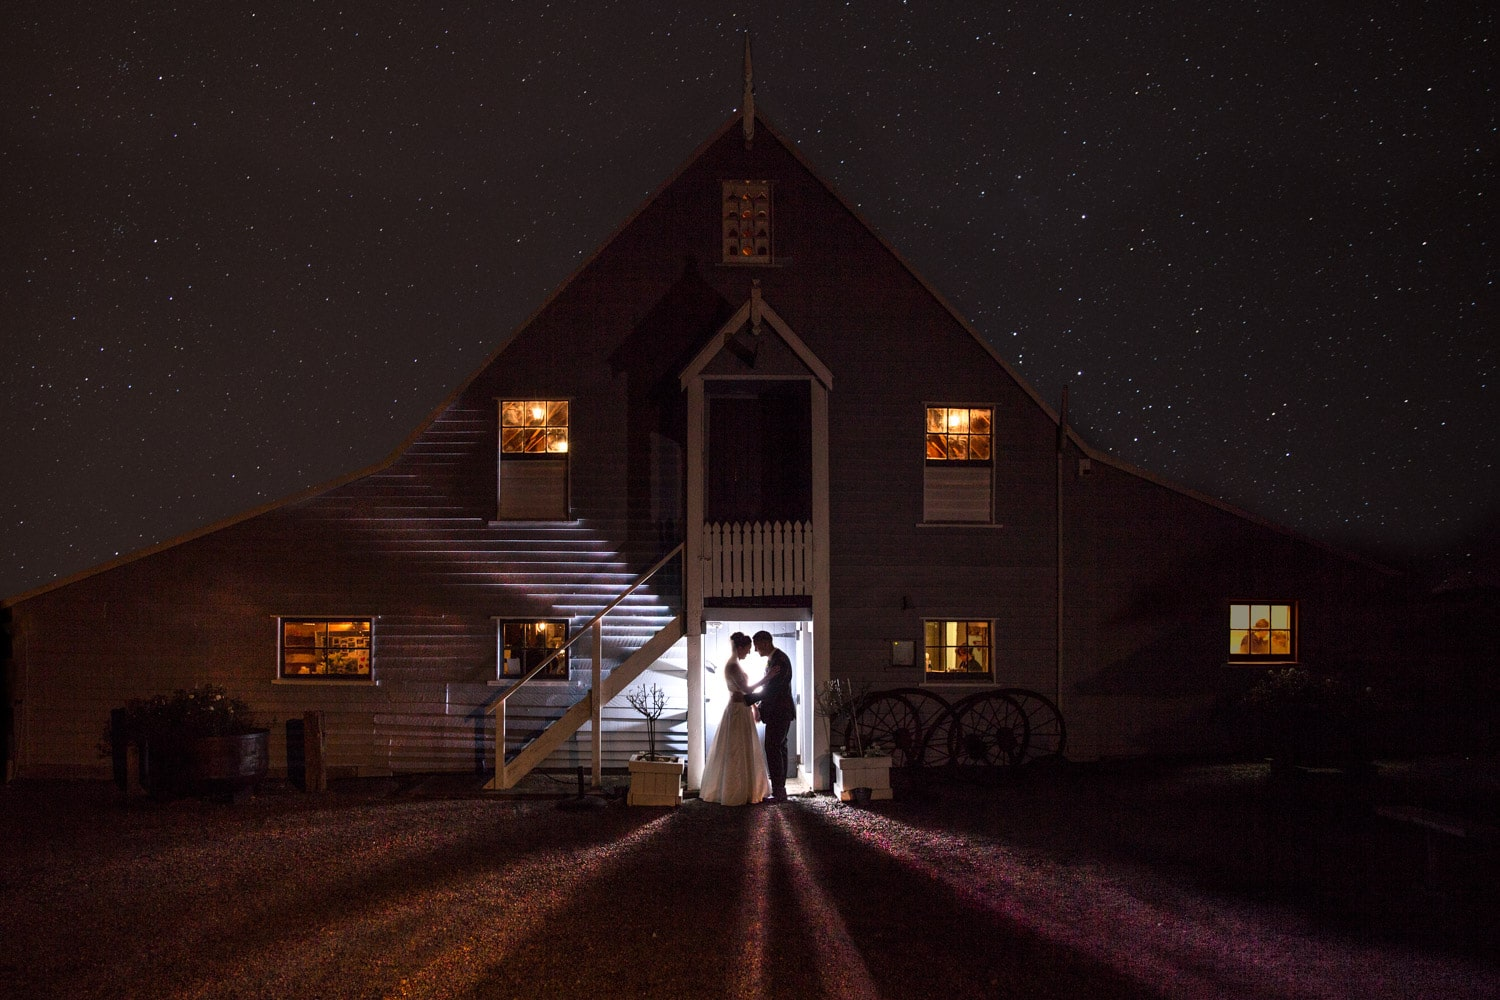 Bride and groom standing together in barn doorway under stars.jpg